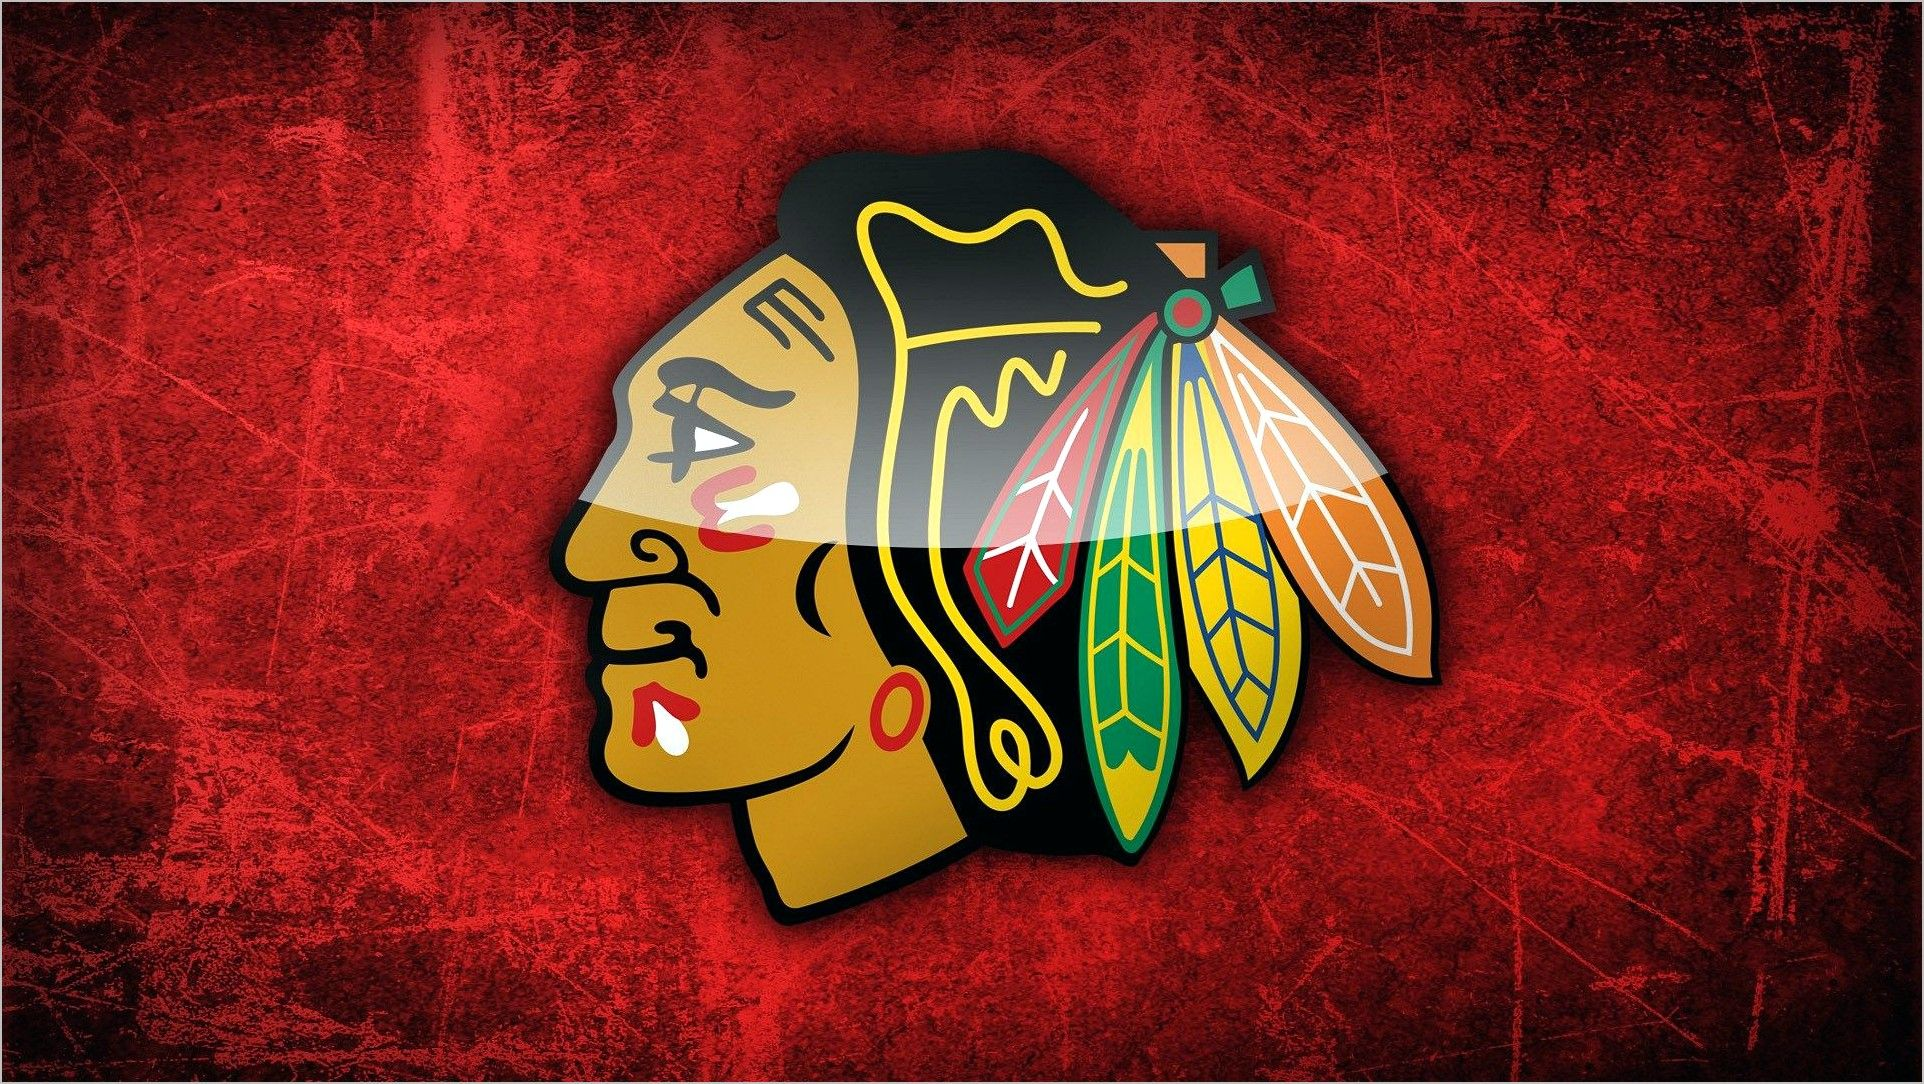 Chicago Blackhawks 4k Wallpaper In 2020 Chicago Blackhawks Wallpaper Chicago Blackhawks Blackhawks